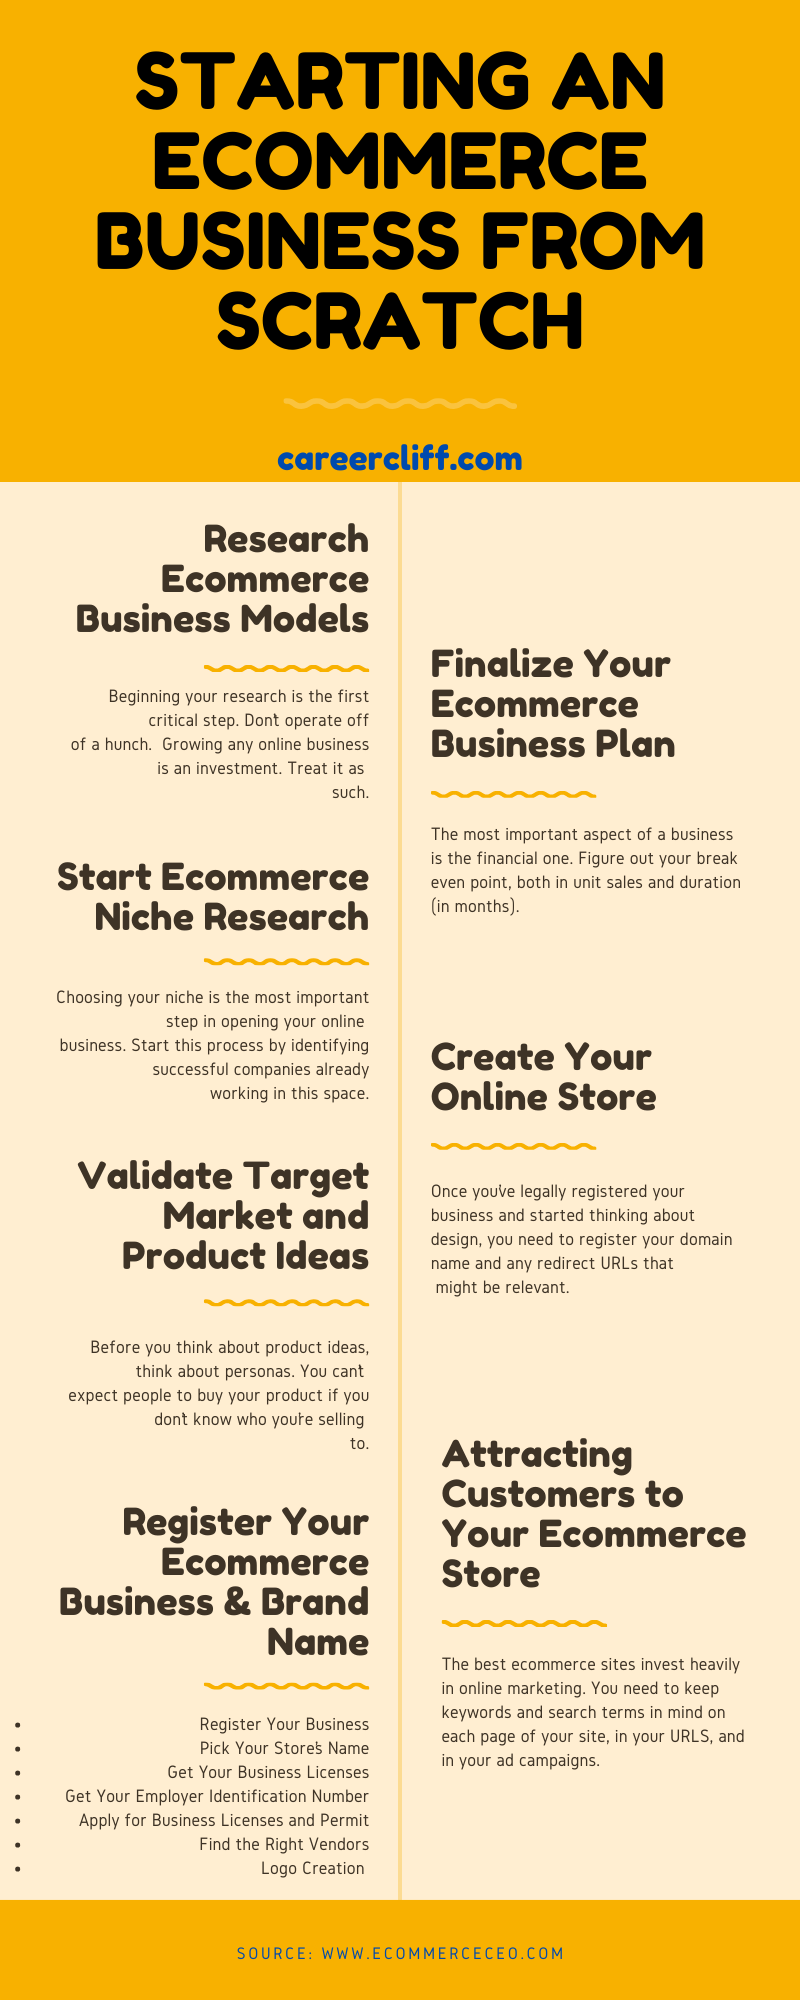 starting an ecommerce business from scratch starting an ecommerce business from scratch build a shopify dropshipping business from scratch build a shopify print on demand business from scratch build online store from scratch starting a ecommerce website from scratch creating an online store from scratch build an ecommerce site from scratch